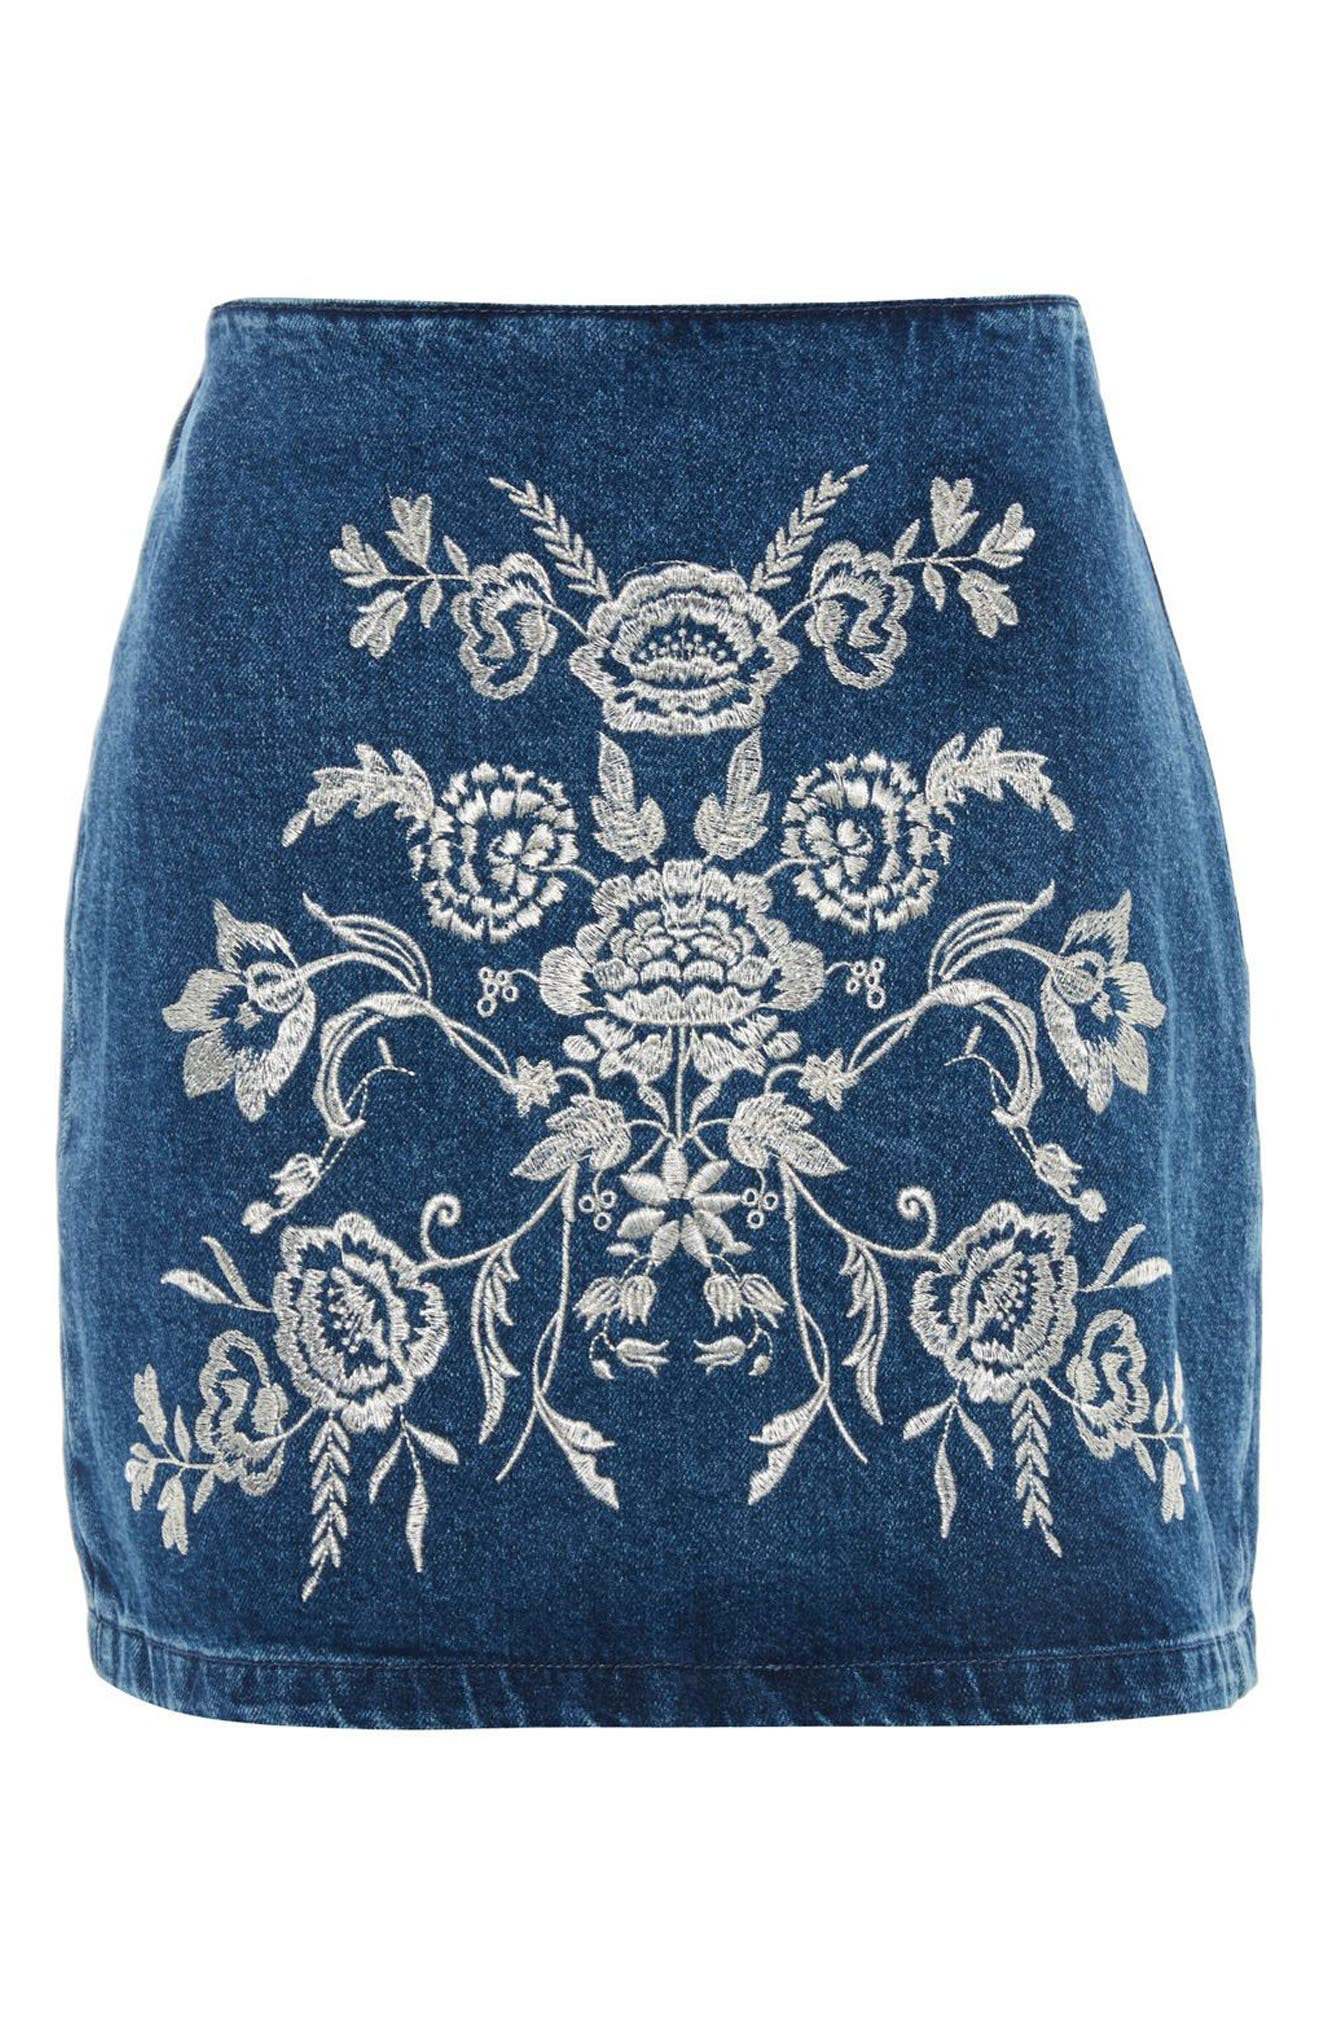 Floral Embroidered A-Line Skirt,                             Alternate thumbnail 8, color,